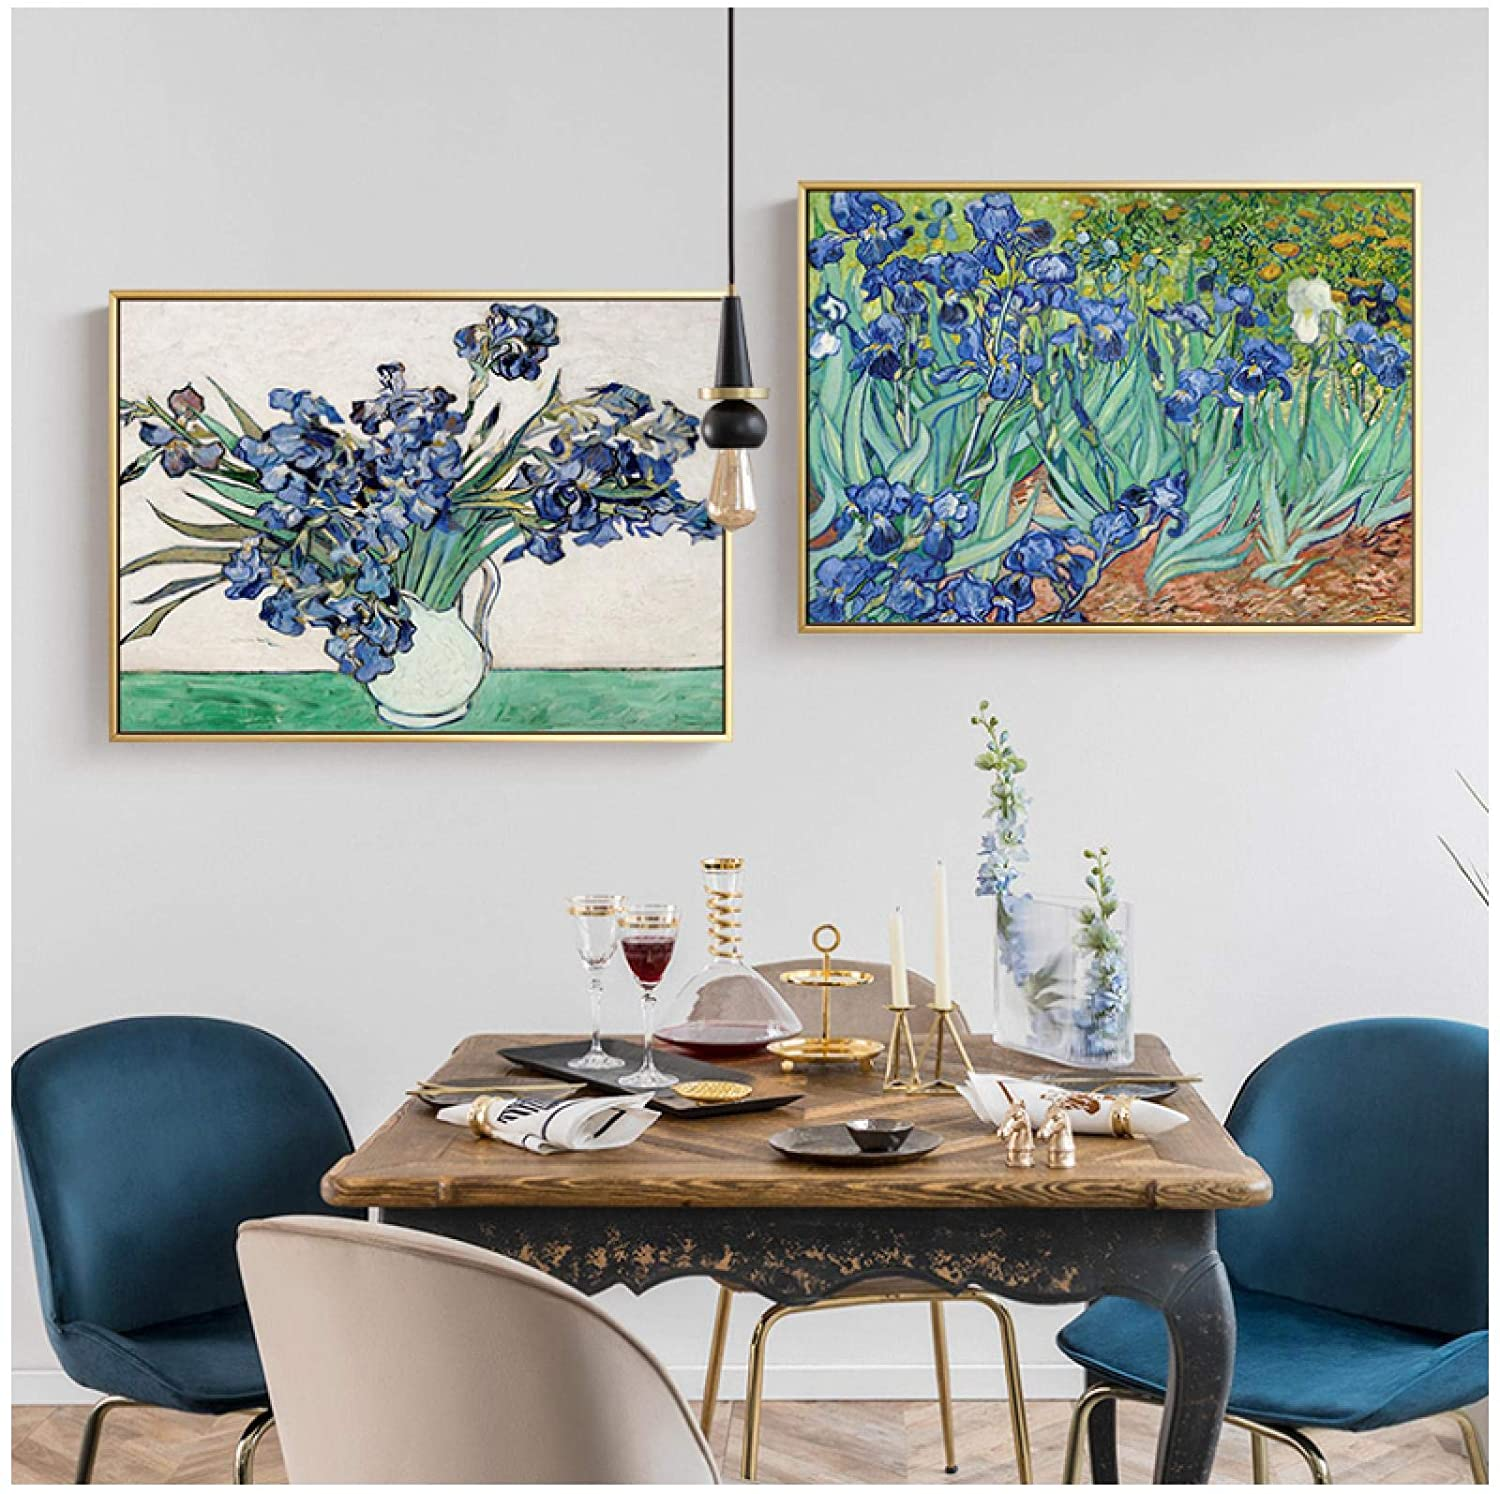 Wall Art ZXYFBH Canvas Painting Catcher Flowers Prints Posters Wall Art for Living Room Europe Dining Room Mural Decor 15.7x23.6in(40x60cm) x2pcs No Frame